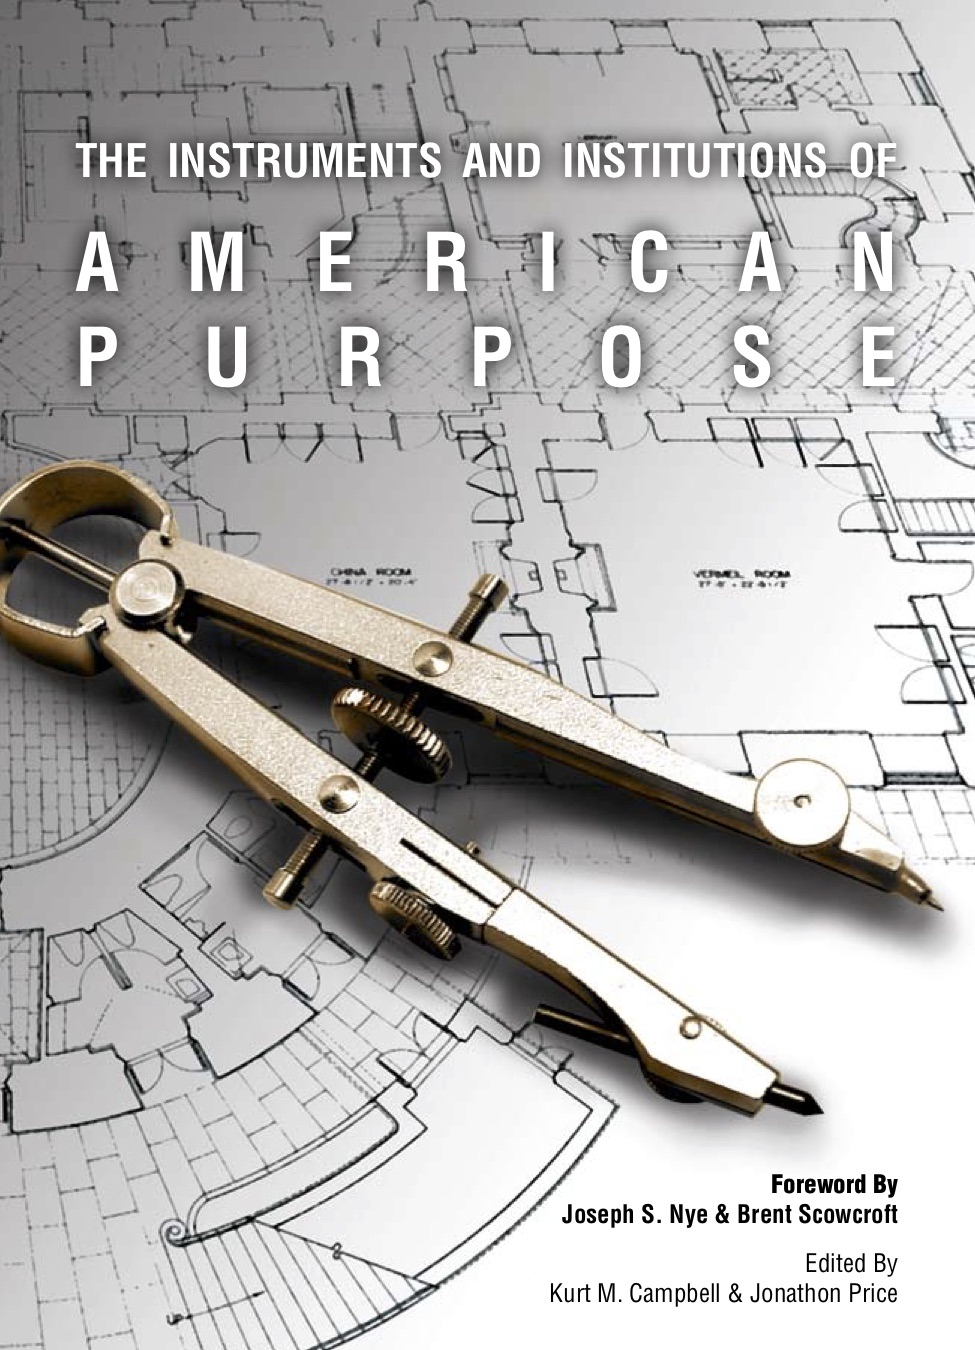 the instruments and institutions of american purpose - This book is a collection of papers prepared for the 2008 summer Aspen Strategy Group conference on The Instruments & Institutions of American Purpose. These chapters represent a thorough accounting of the capabilities and limitations of the key organizations—diplomatic, military, financial, and intelligence—that American policymakers rely upon to address global challenges.Contributors include: Robert Gallucci, Joseph S. Nye, Jr., Philip D. Zelikow, Jane Holl Lute, Ashton Carter, Richard Falkenrath, Graham Allison, Lael Brainard, David Lipton, Diana Farrell, Sylvia Matthews Burwell, Ivo Daalder, Samuel Berger, Thomas Donilon, John Podesta, Antony Blinken, Andrew KrepinevichPublished: April 15, 2009